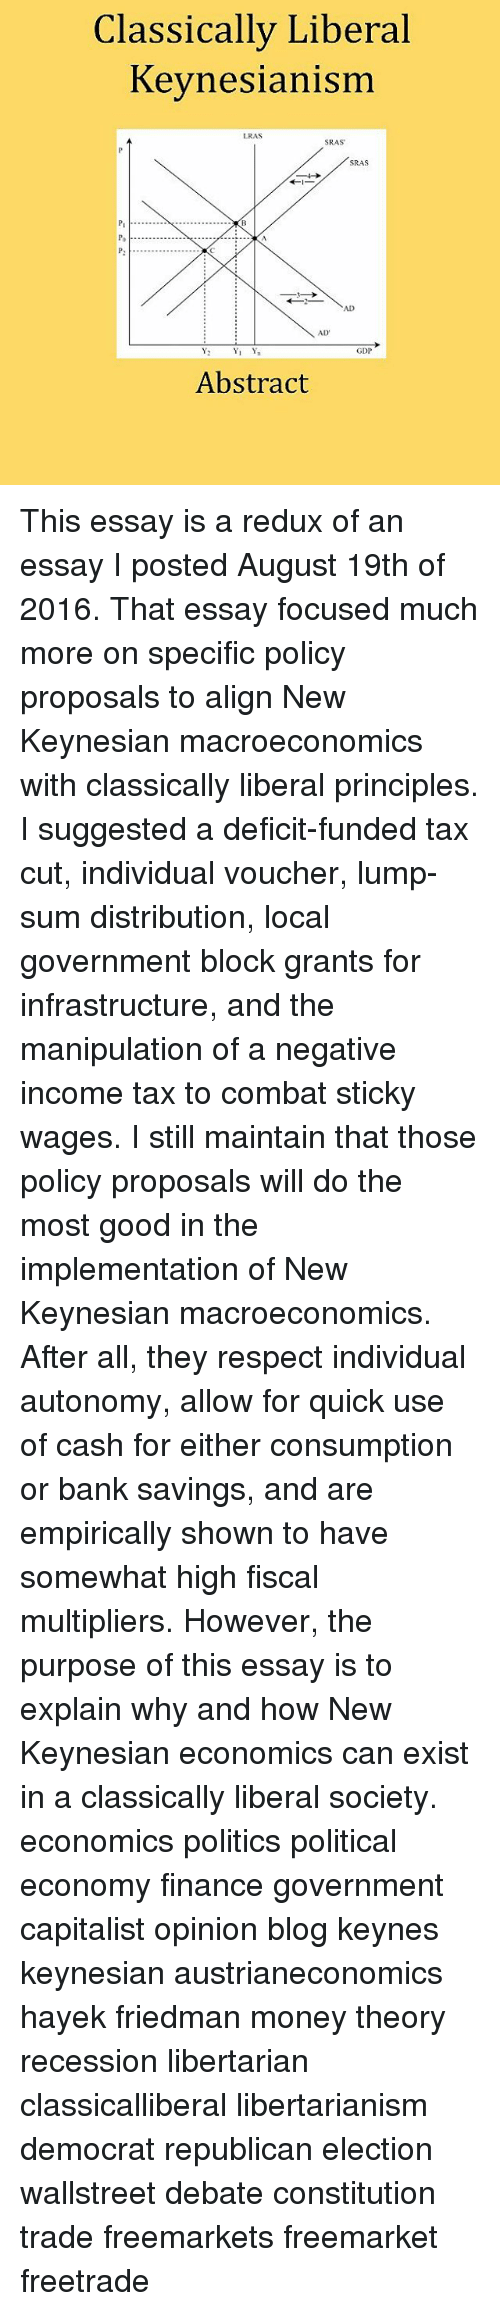 finance meme classically liberal keynesianism lras sras sras ad finance memes and recess classically liberal keynesianism lras sras sras ad gdp abstract